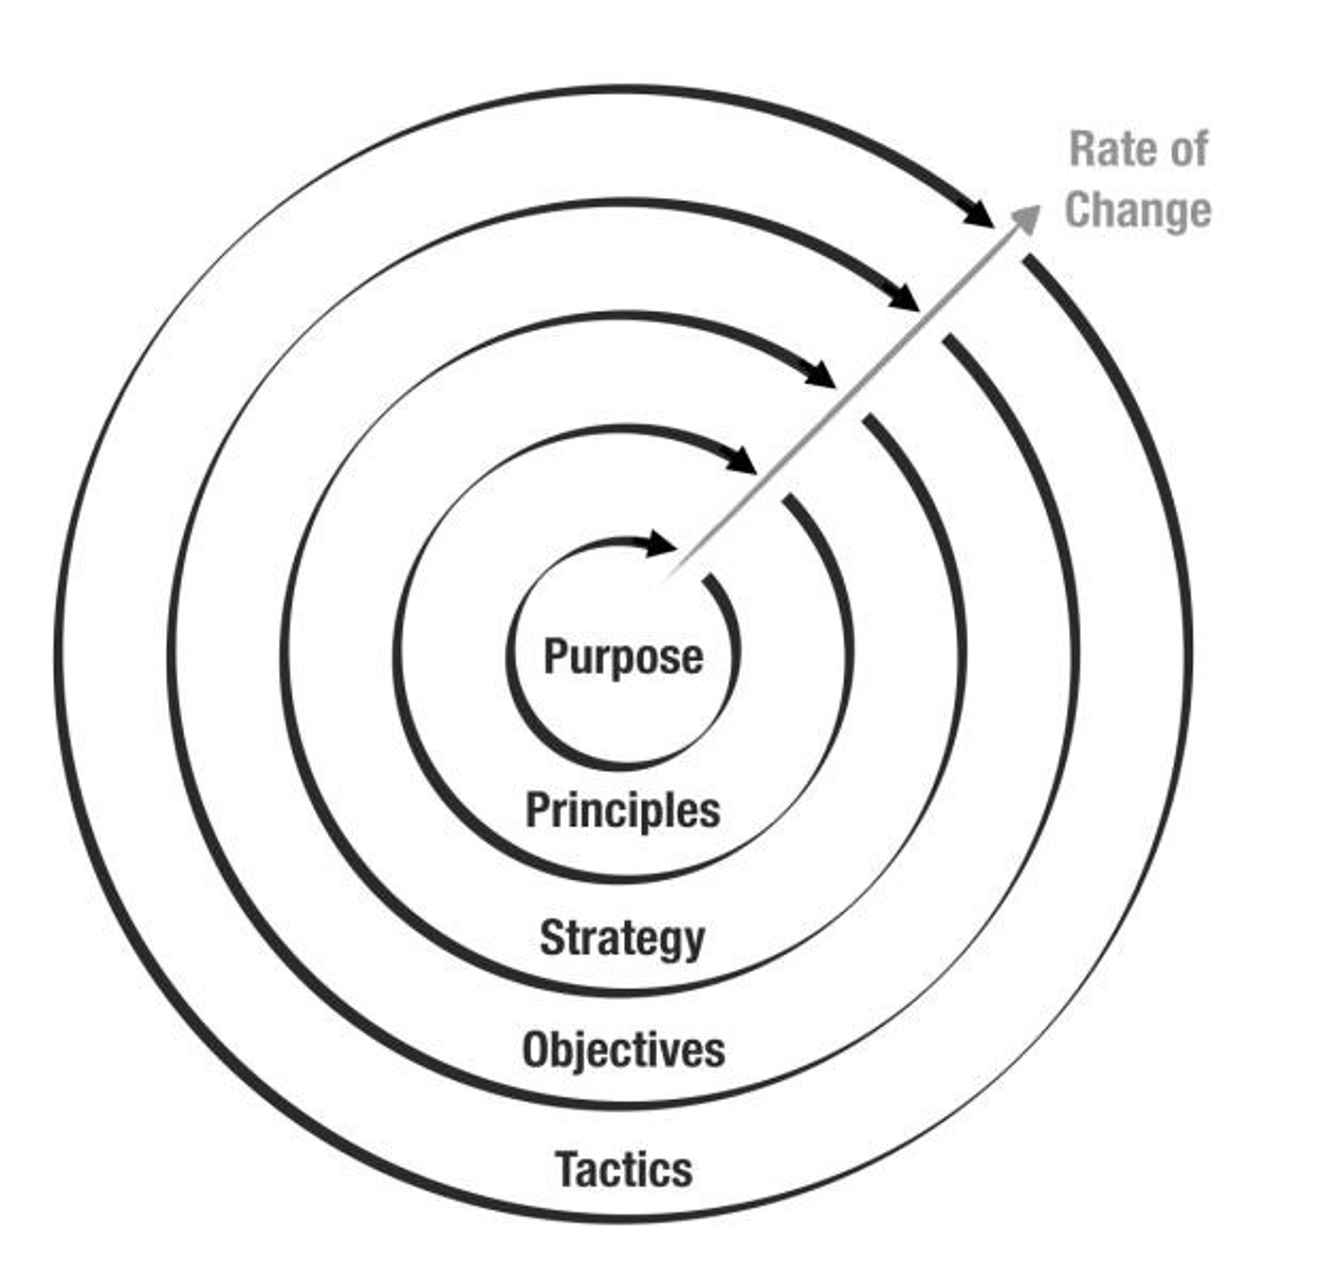 Rate of change diagram